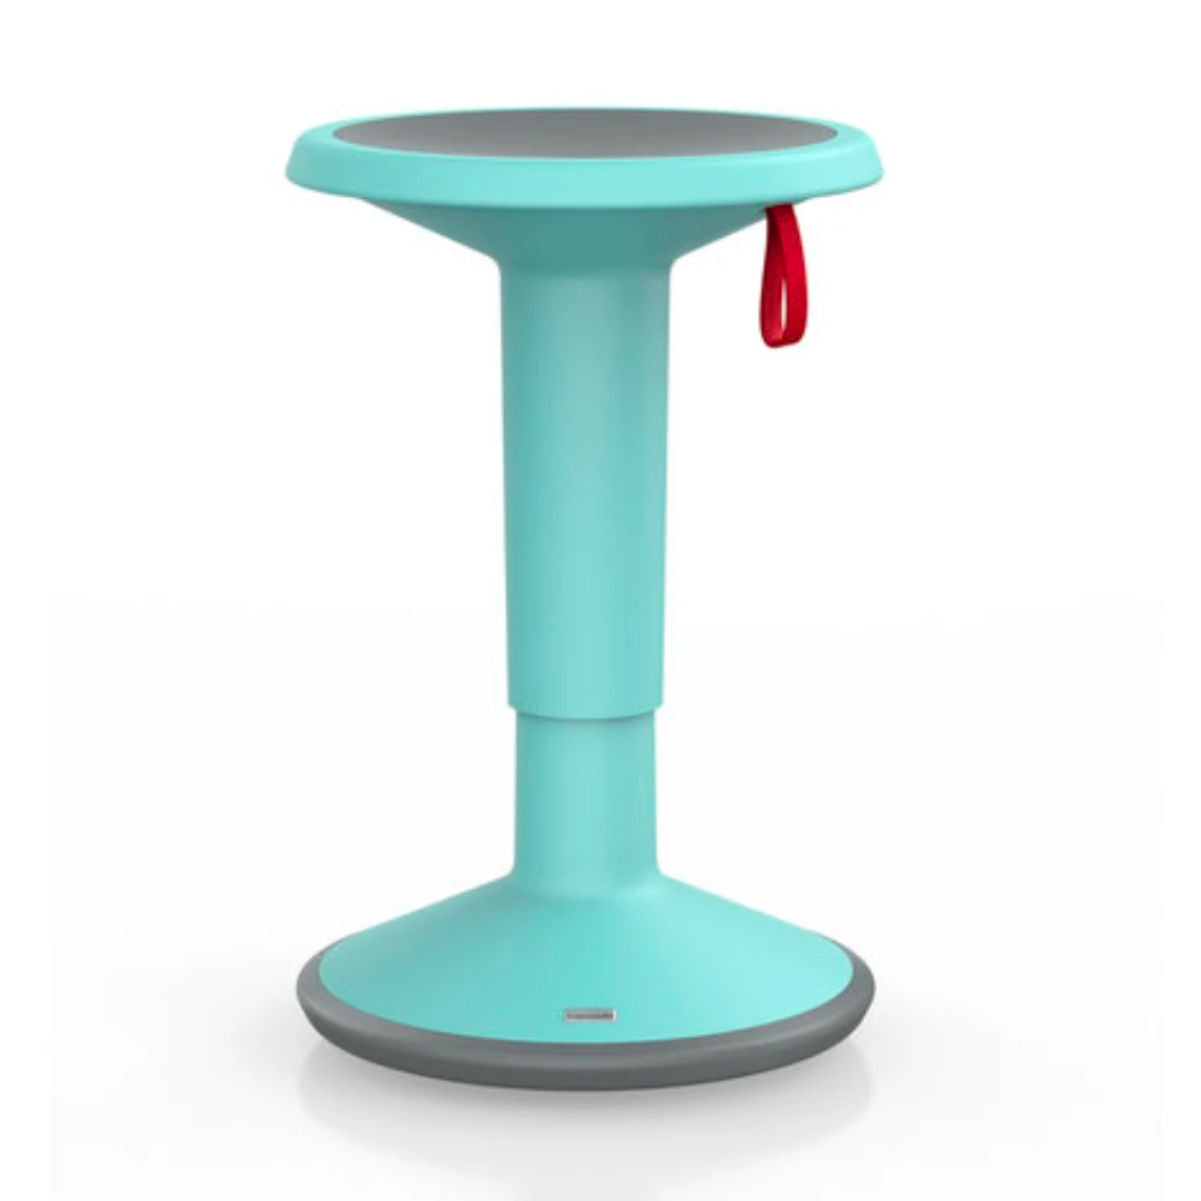 Upis1 Ergonomic Stool , Ice Blue